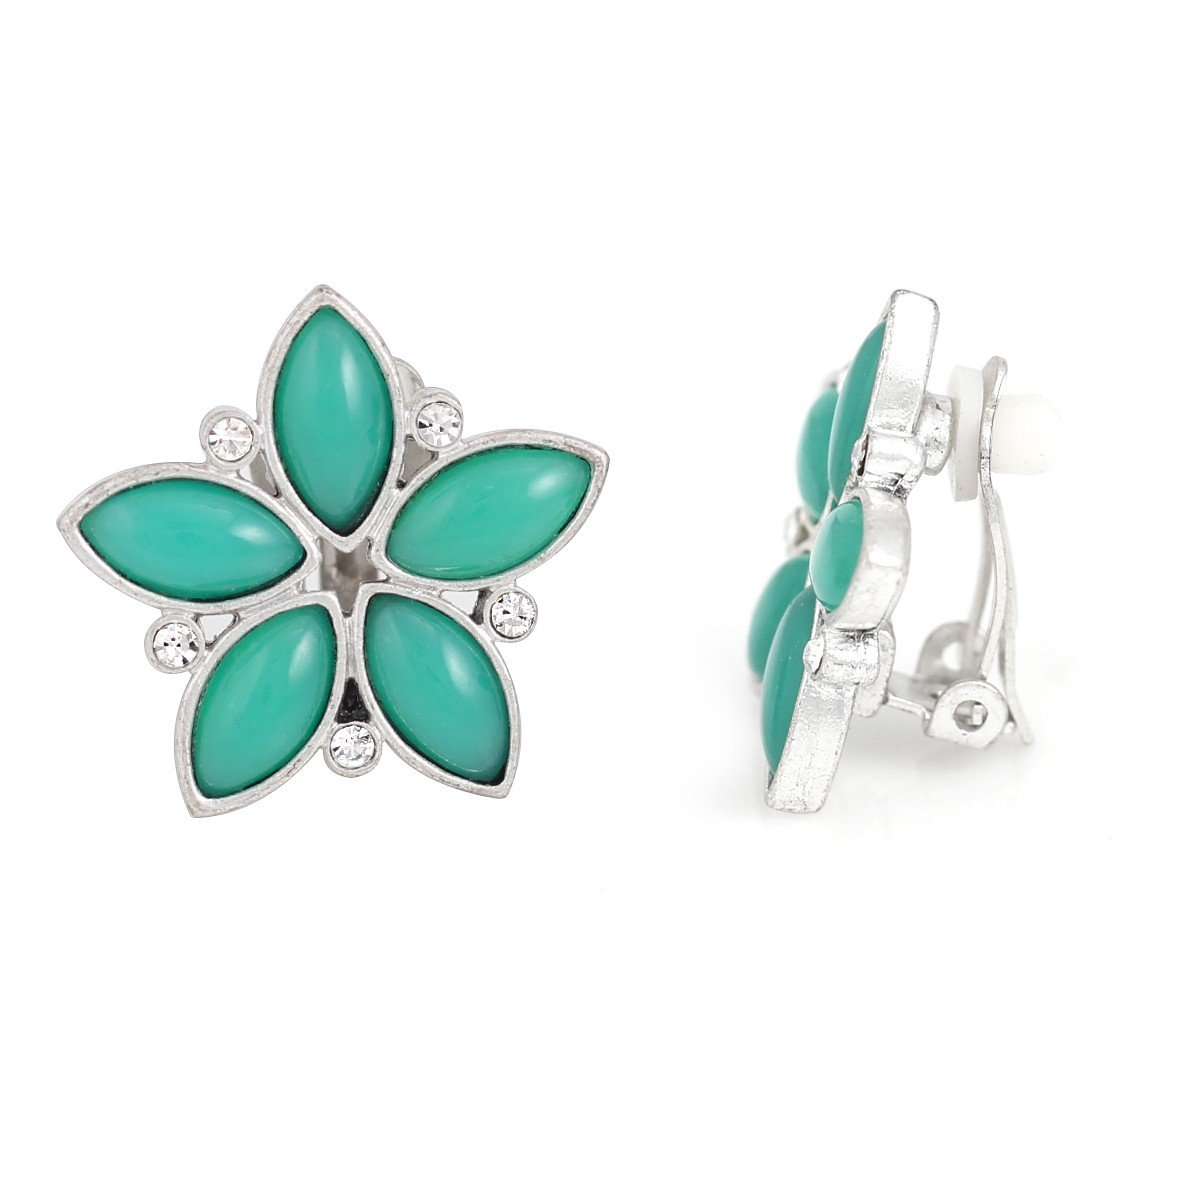 Jewlery11 Silver-Tone Metal Green Agate Flower Clip On Earrings Gift For Her